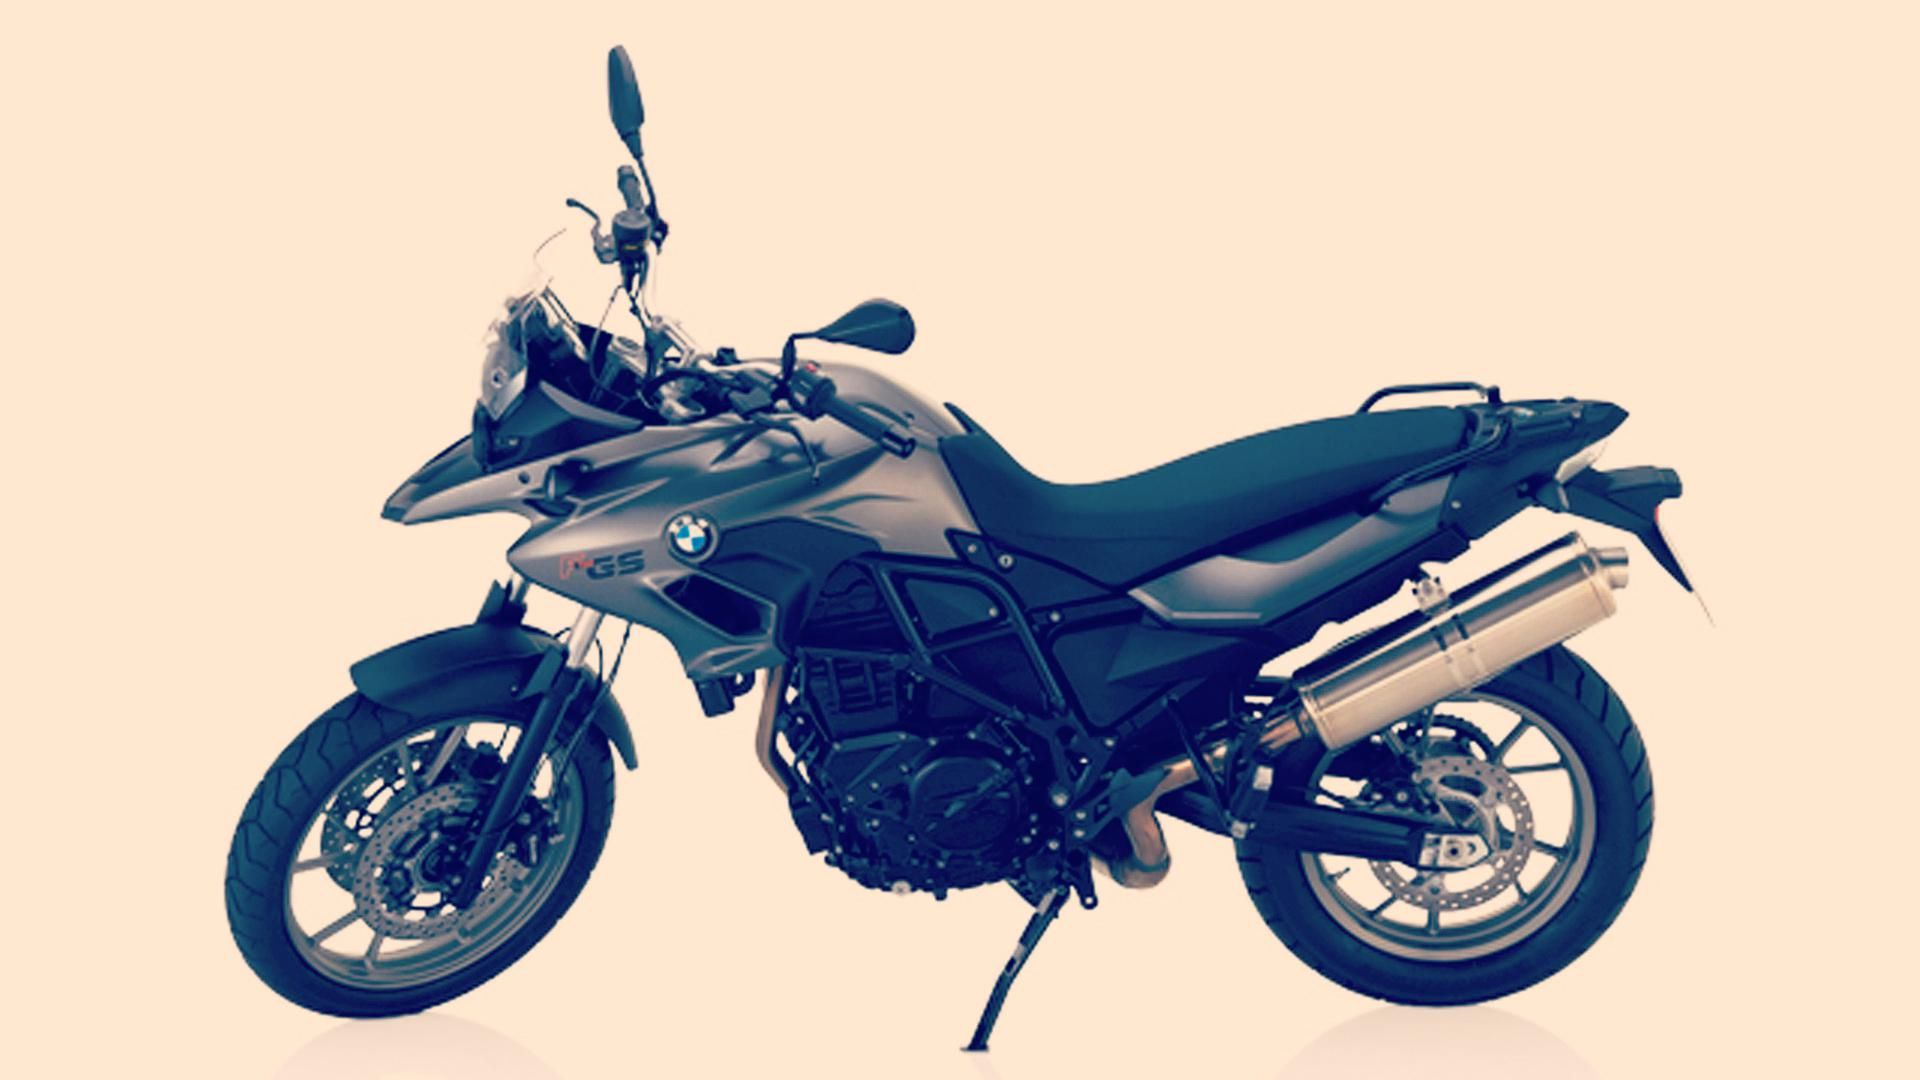 Wallpapers 2014 BMW F 700 GS ABS Features